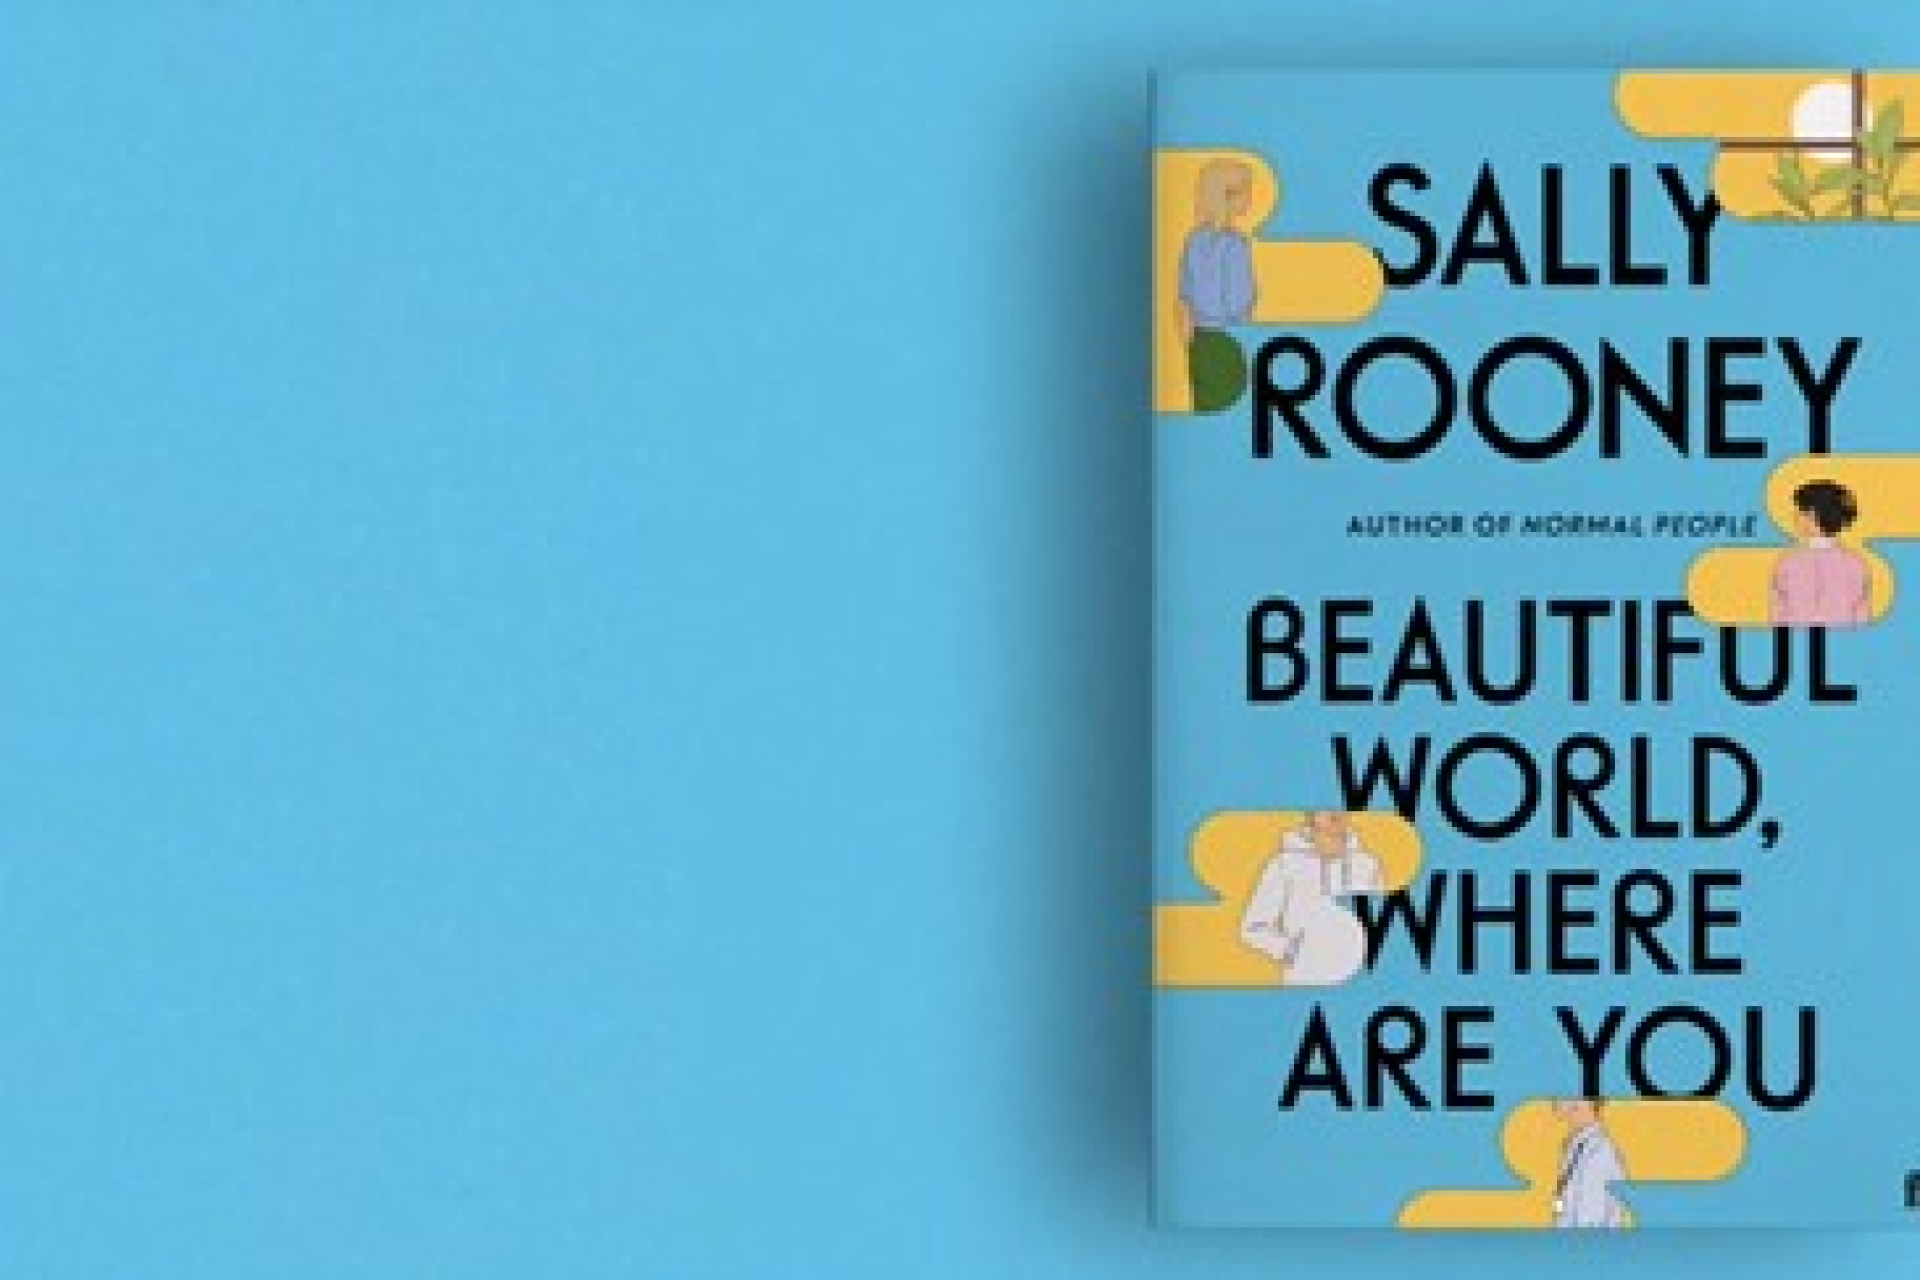 Are you a Sally Rooney Fan? If so, you must check out her new pop-up shop in Shoreditch